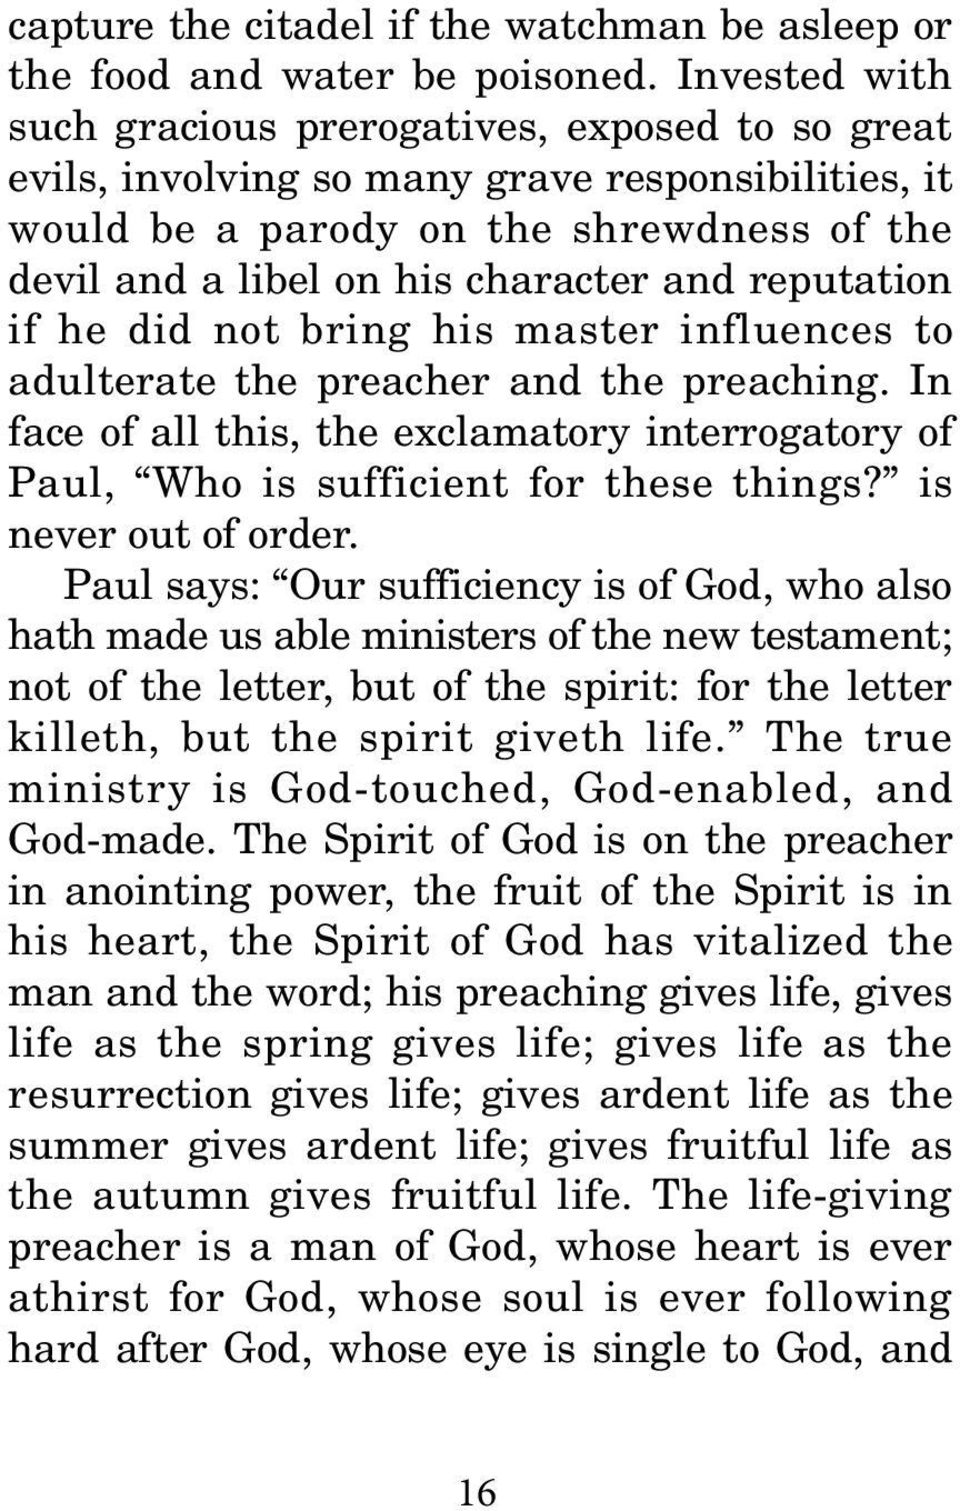 reputation if he did not bring his master influences to adulterate the preacher and the preaching. In face of all this, the exclamatory interrogatory of Paul, Who is sufficient for these things?